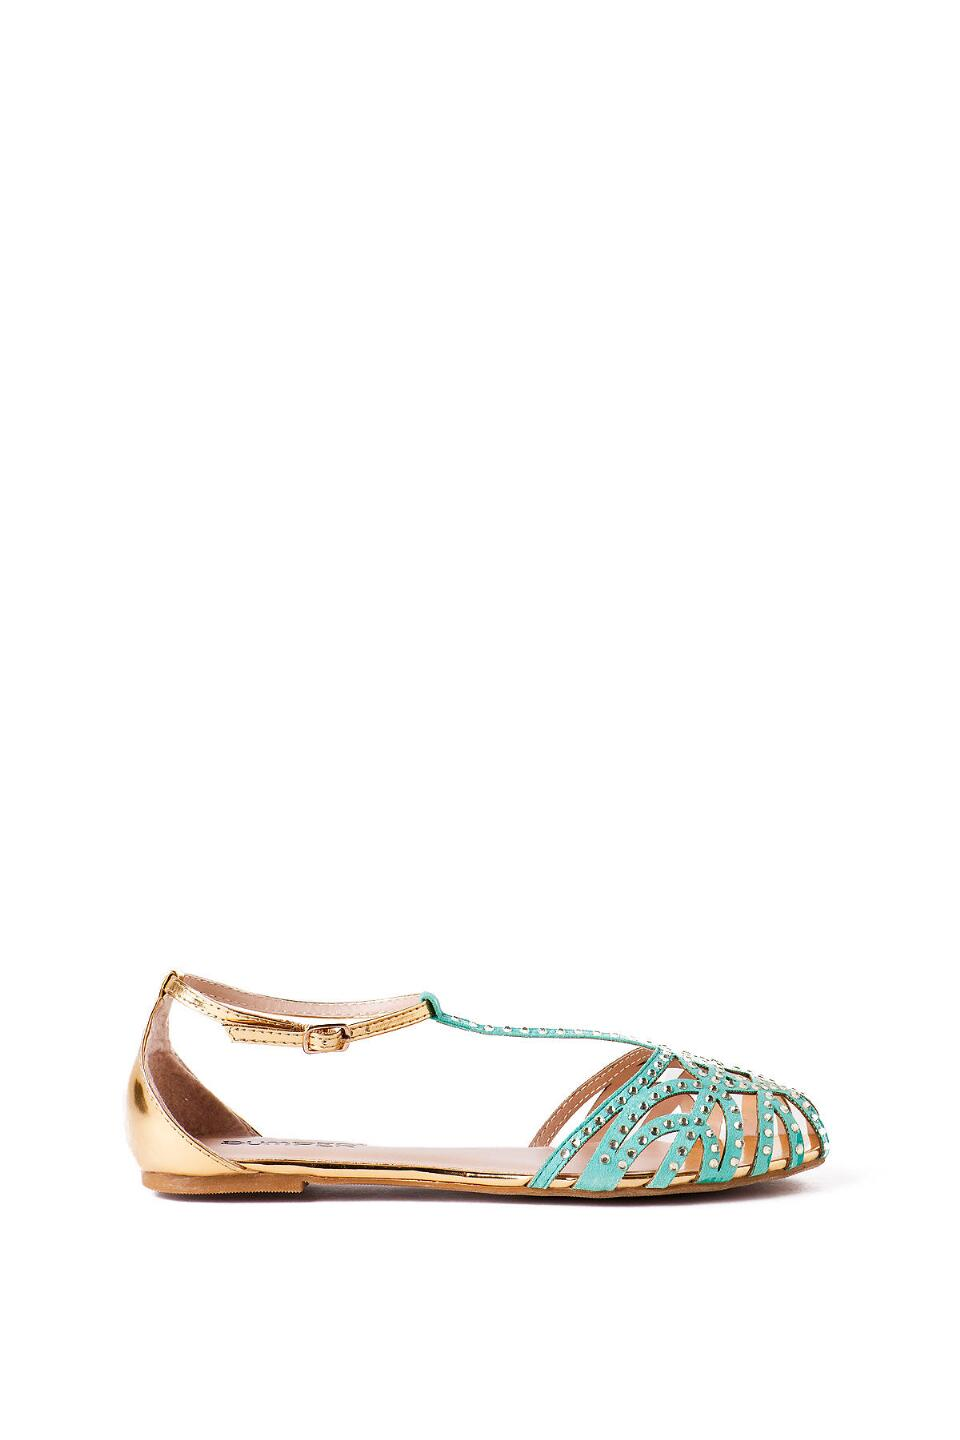 Zaire Rhinestone Caged T- Strap Sandal in Mint-  mint-clright